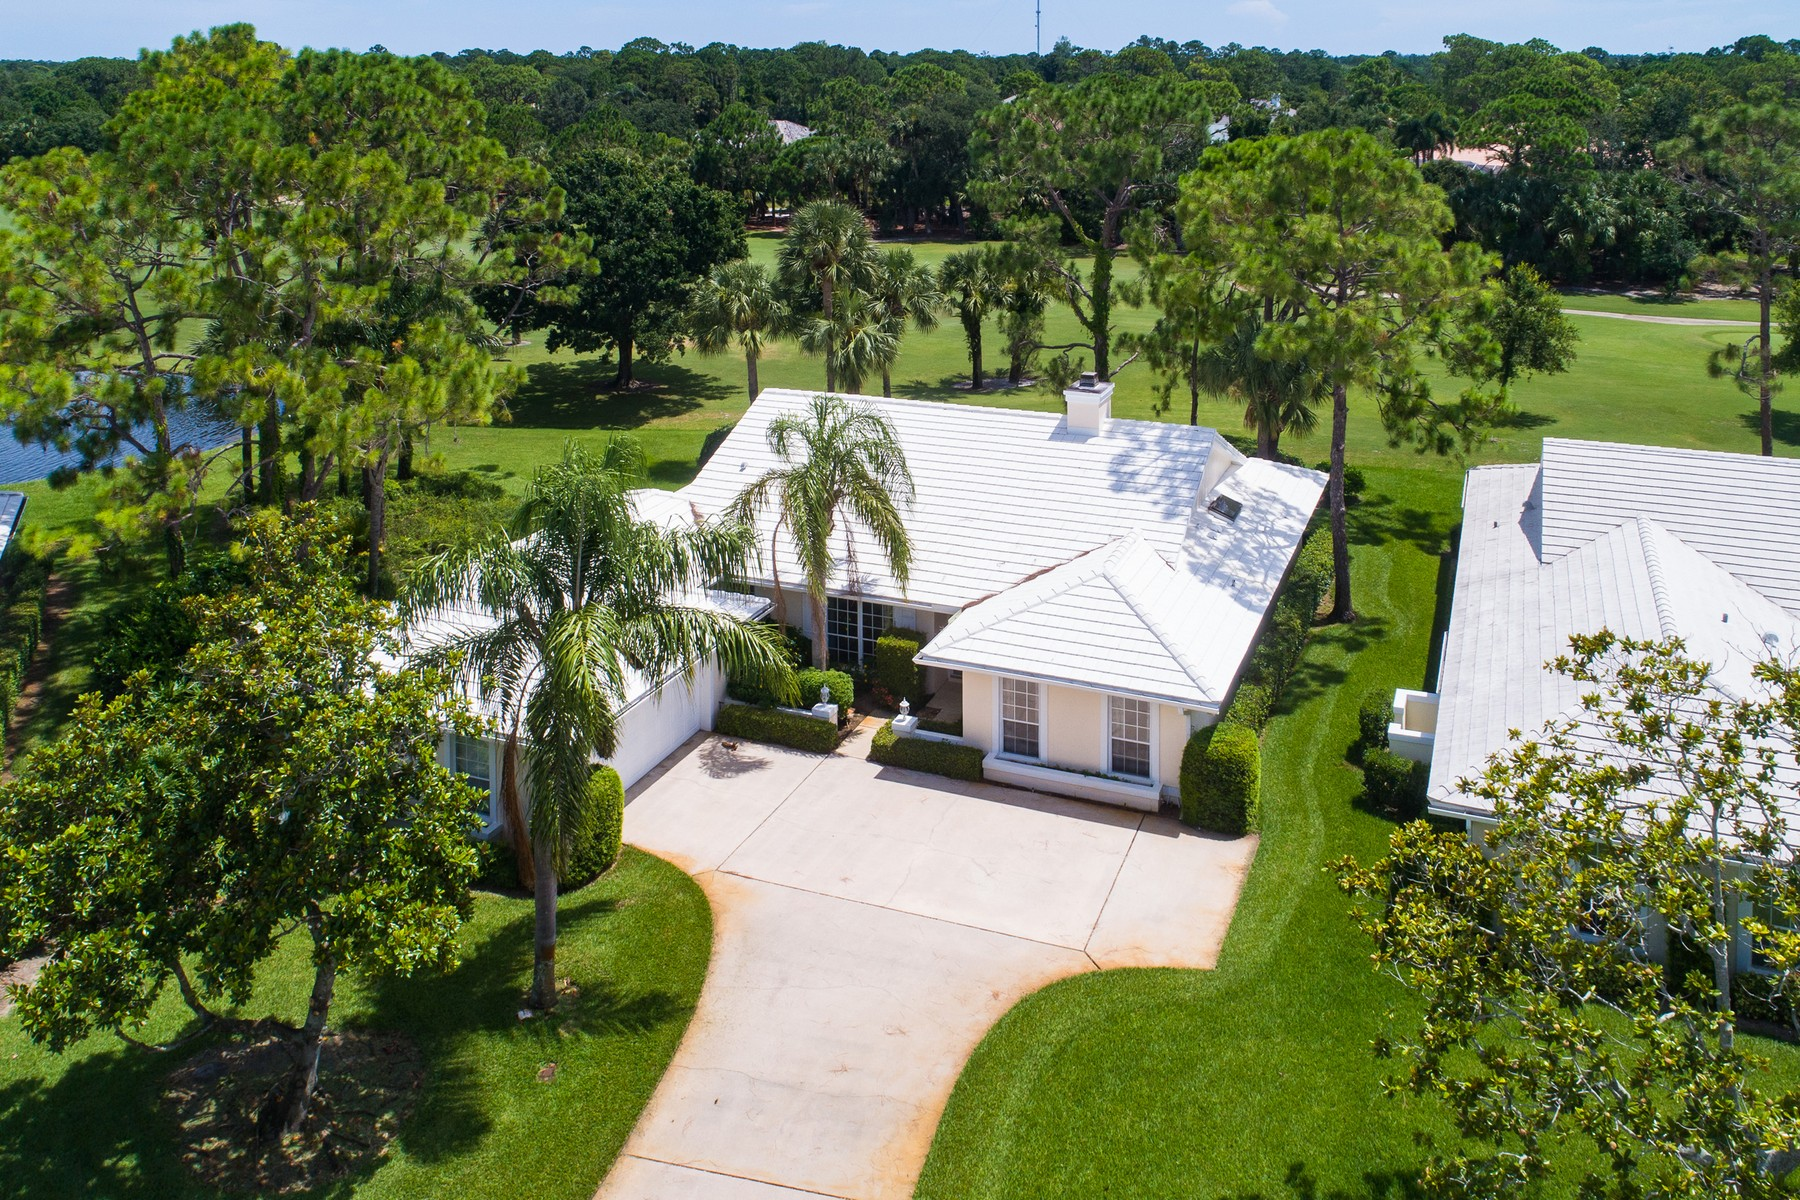 Single Family Home for Sale at Golf Villa overlooking Golf Course 5807 Magnolia Lane Vero Beach, Florida 32967 United States